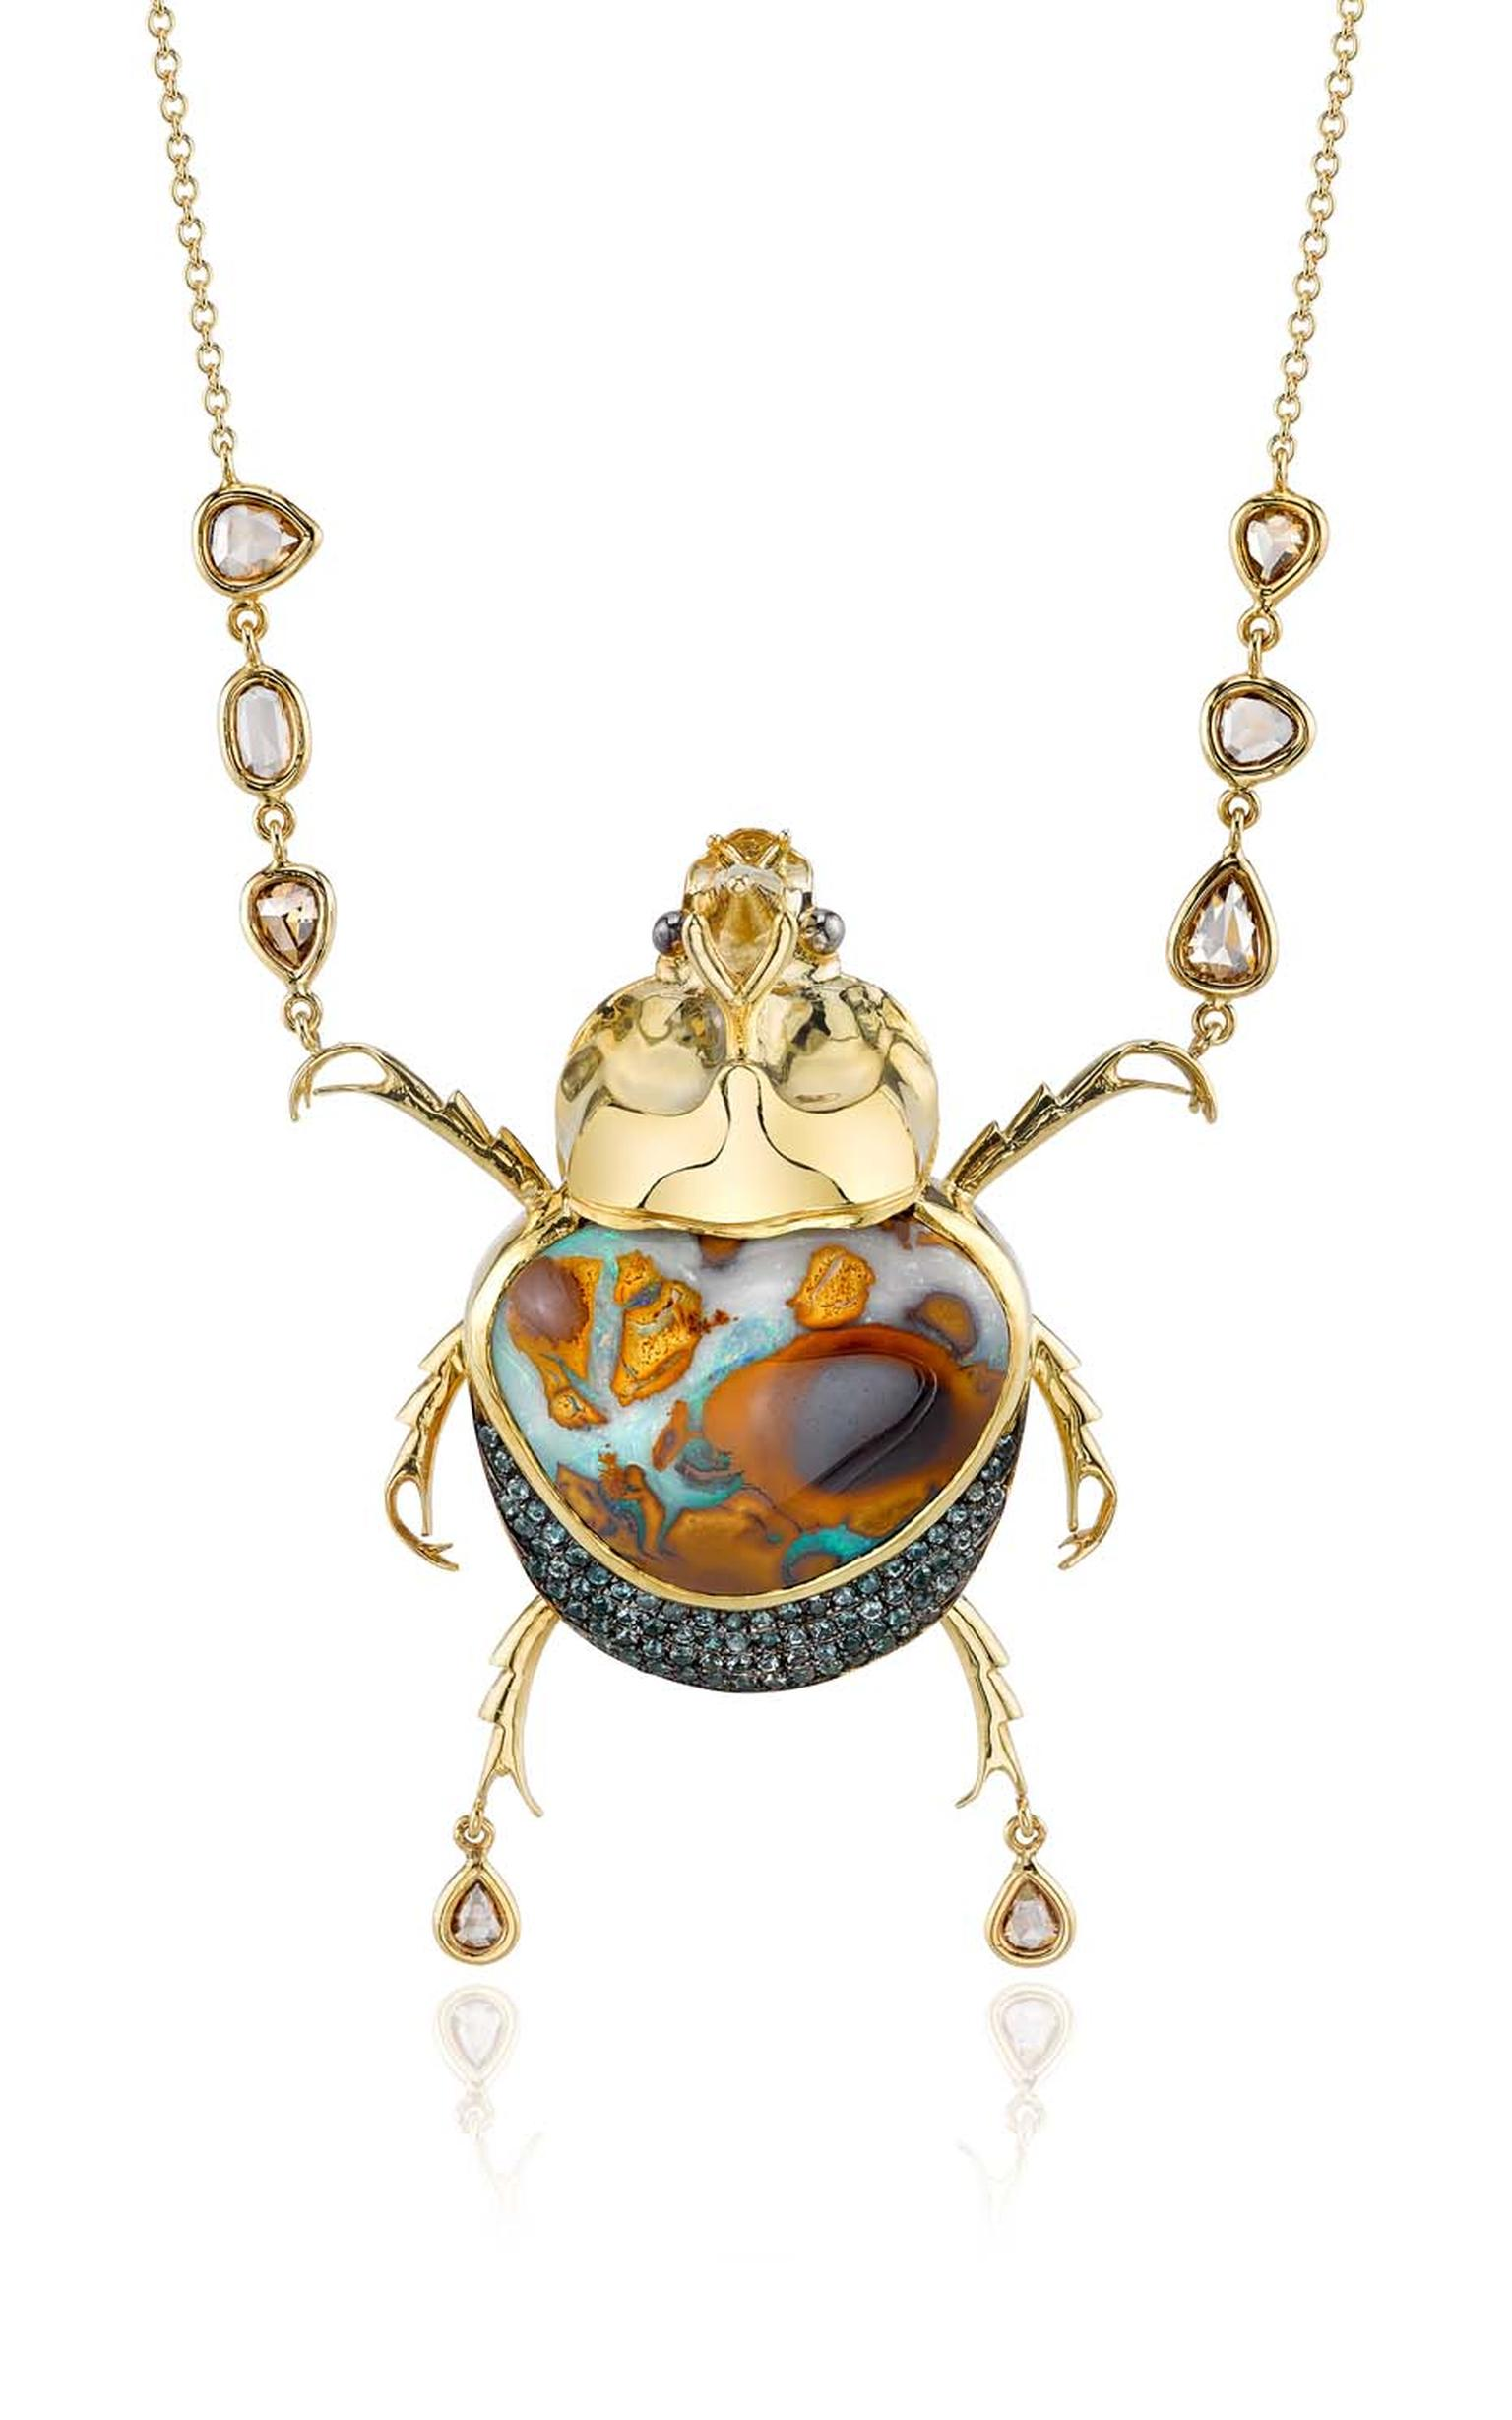 Daniela Villegas yellow gold Surfer necklace with garnet, champagne diamonds and a 27.12ct opal.